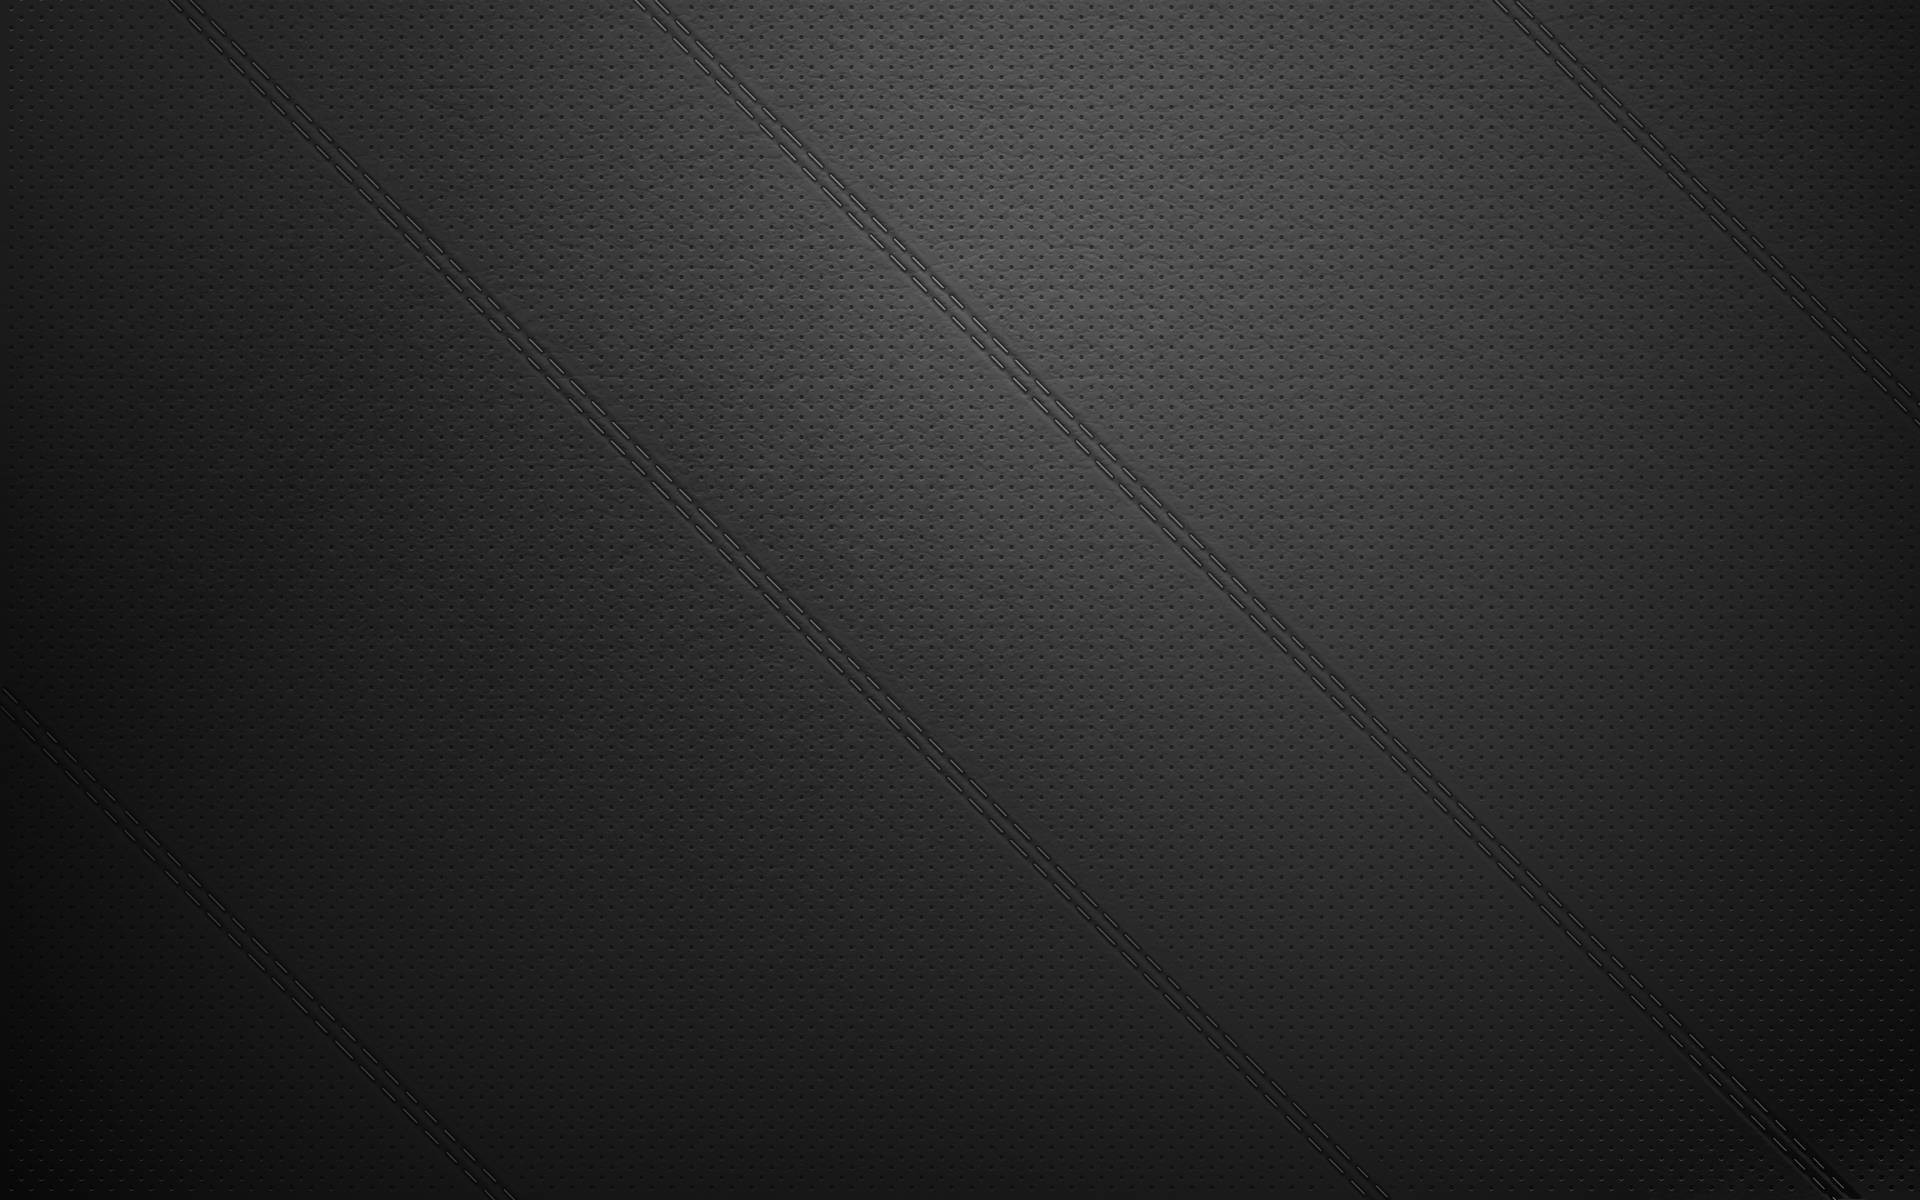 Plain Wallpaper Android Apps on Google Play 806×632 Plain Wallpaper (49  Wallpapers)